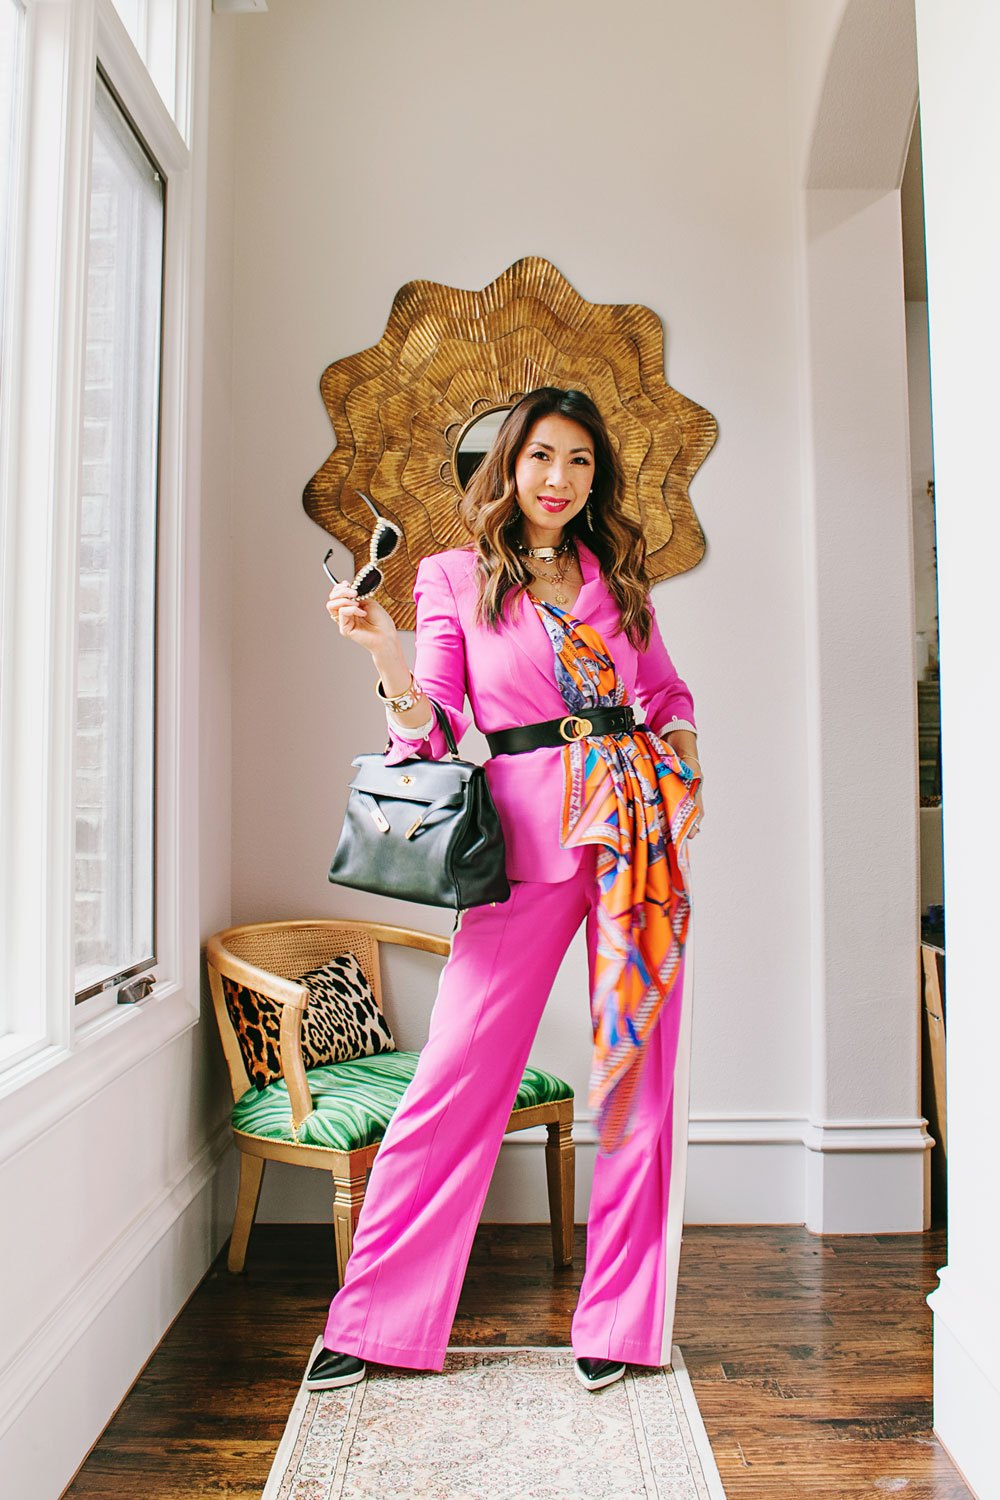 Best Influencers Over 40, Including Samantha Stewart from Style Of Sam